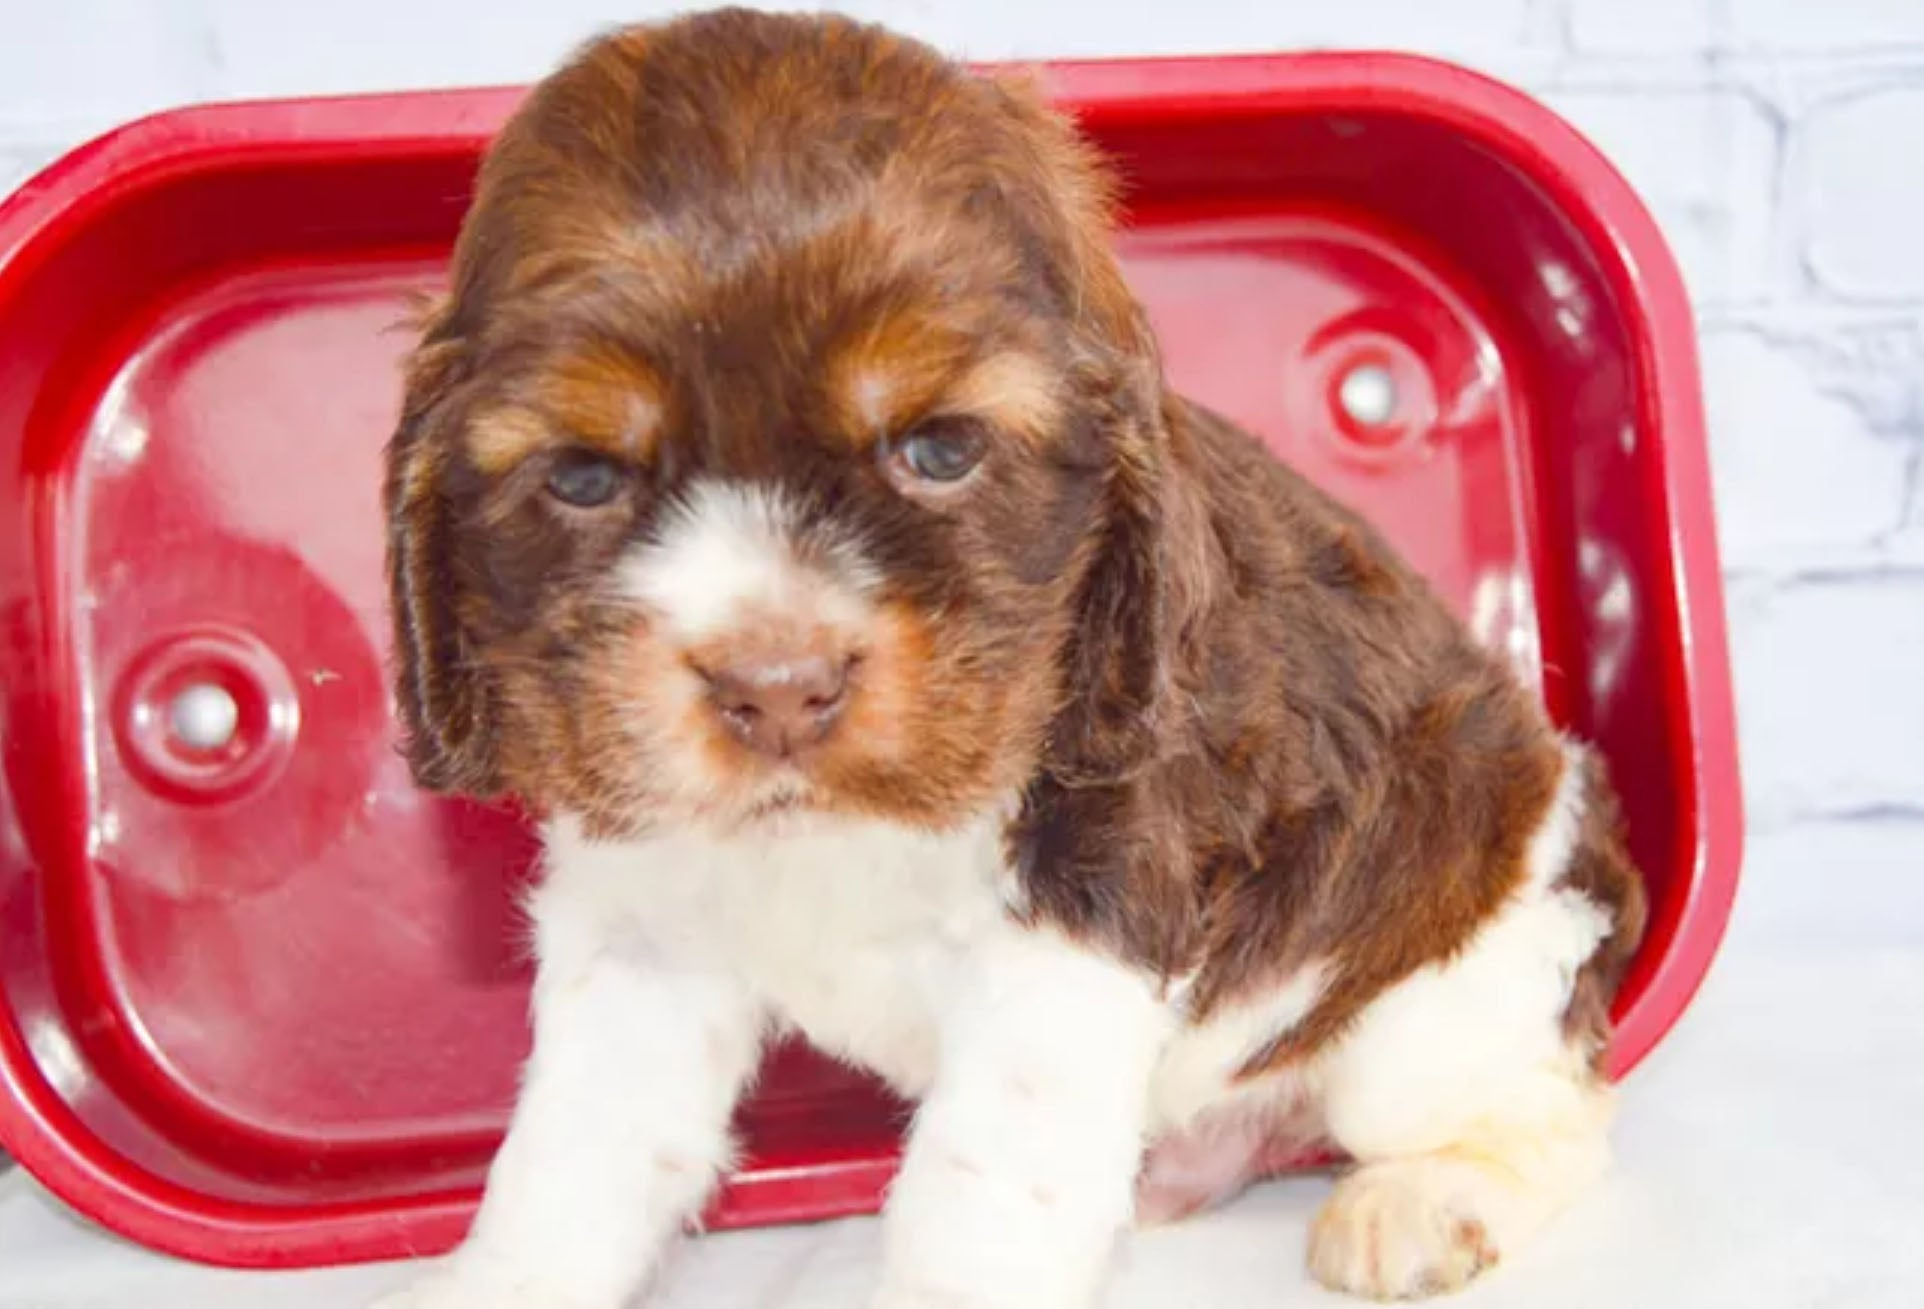 A brown puppy from Creekside Puppy Adoptions